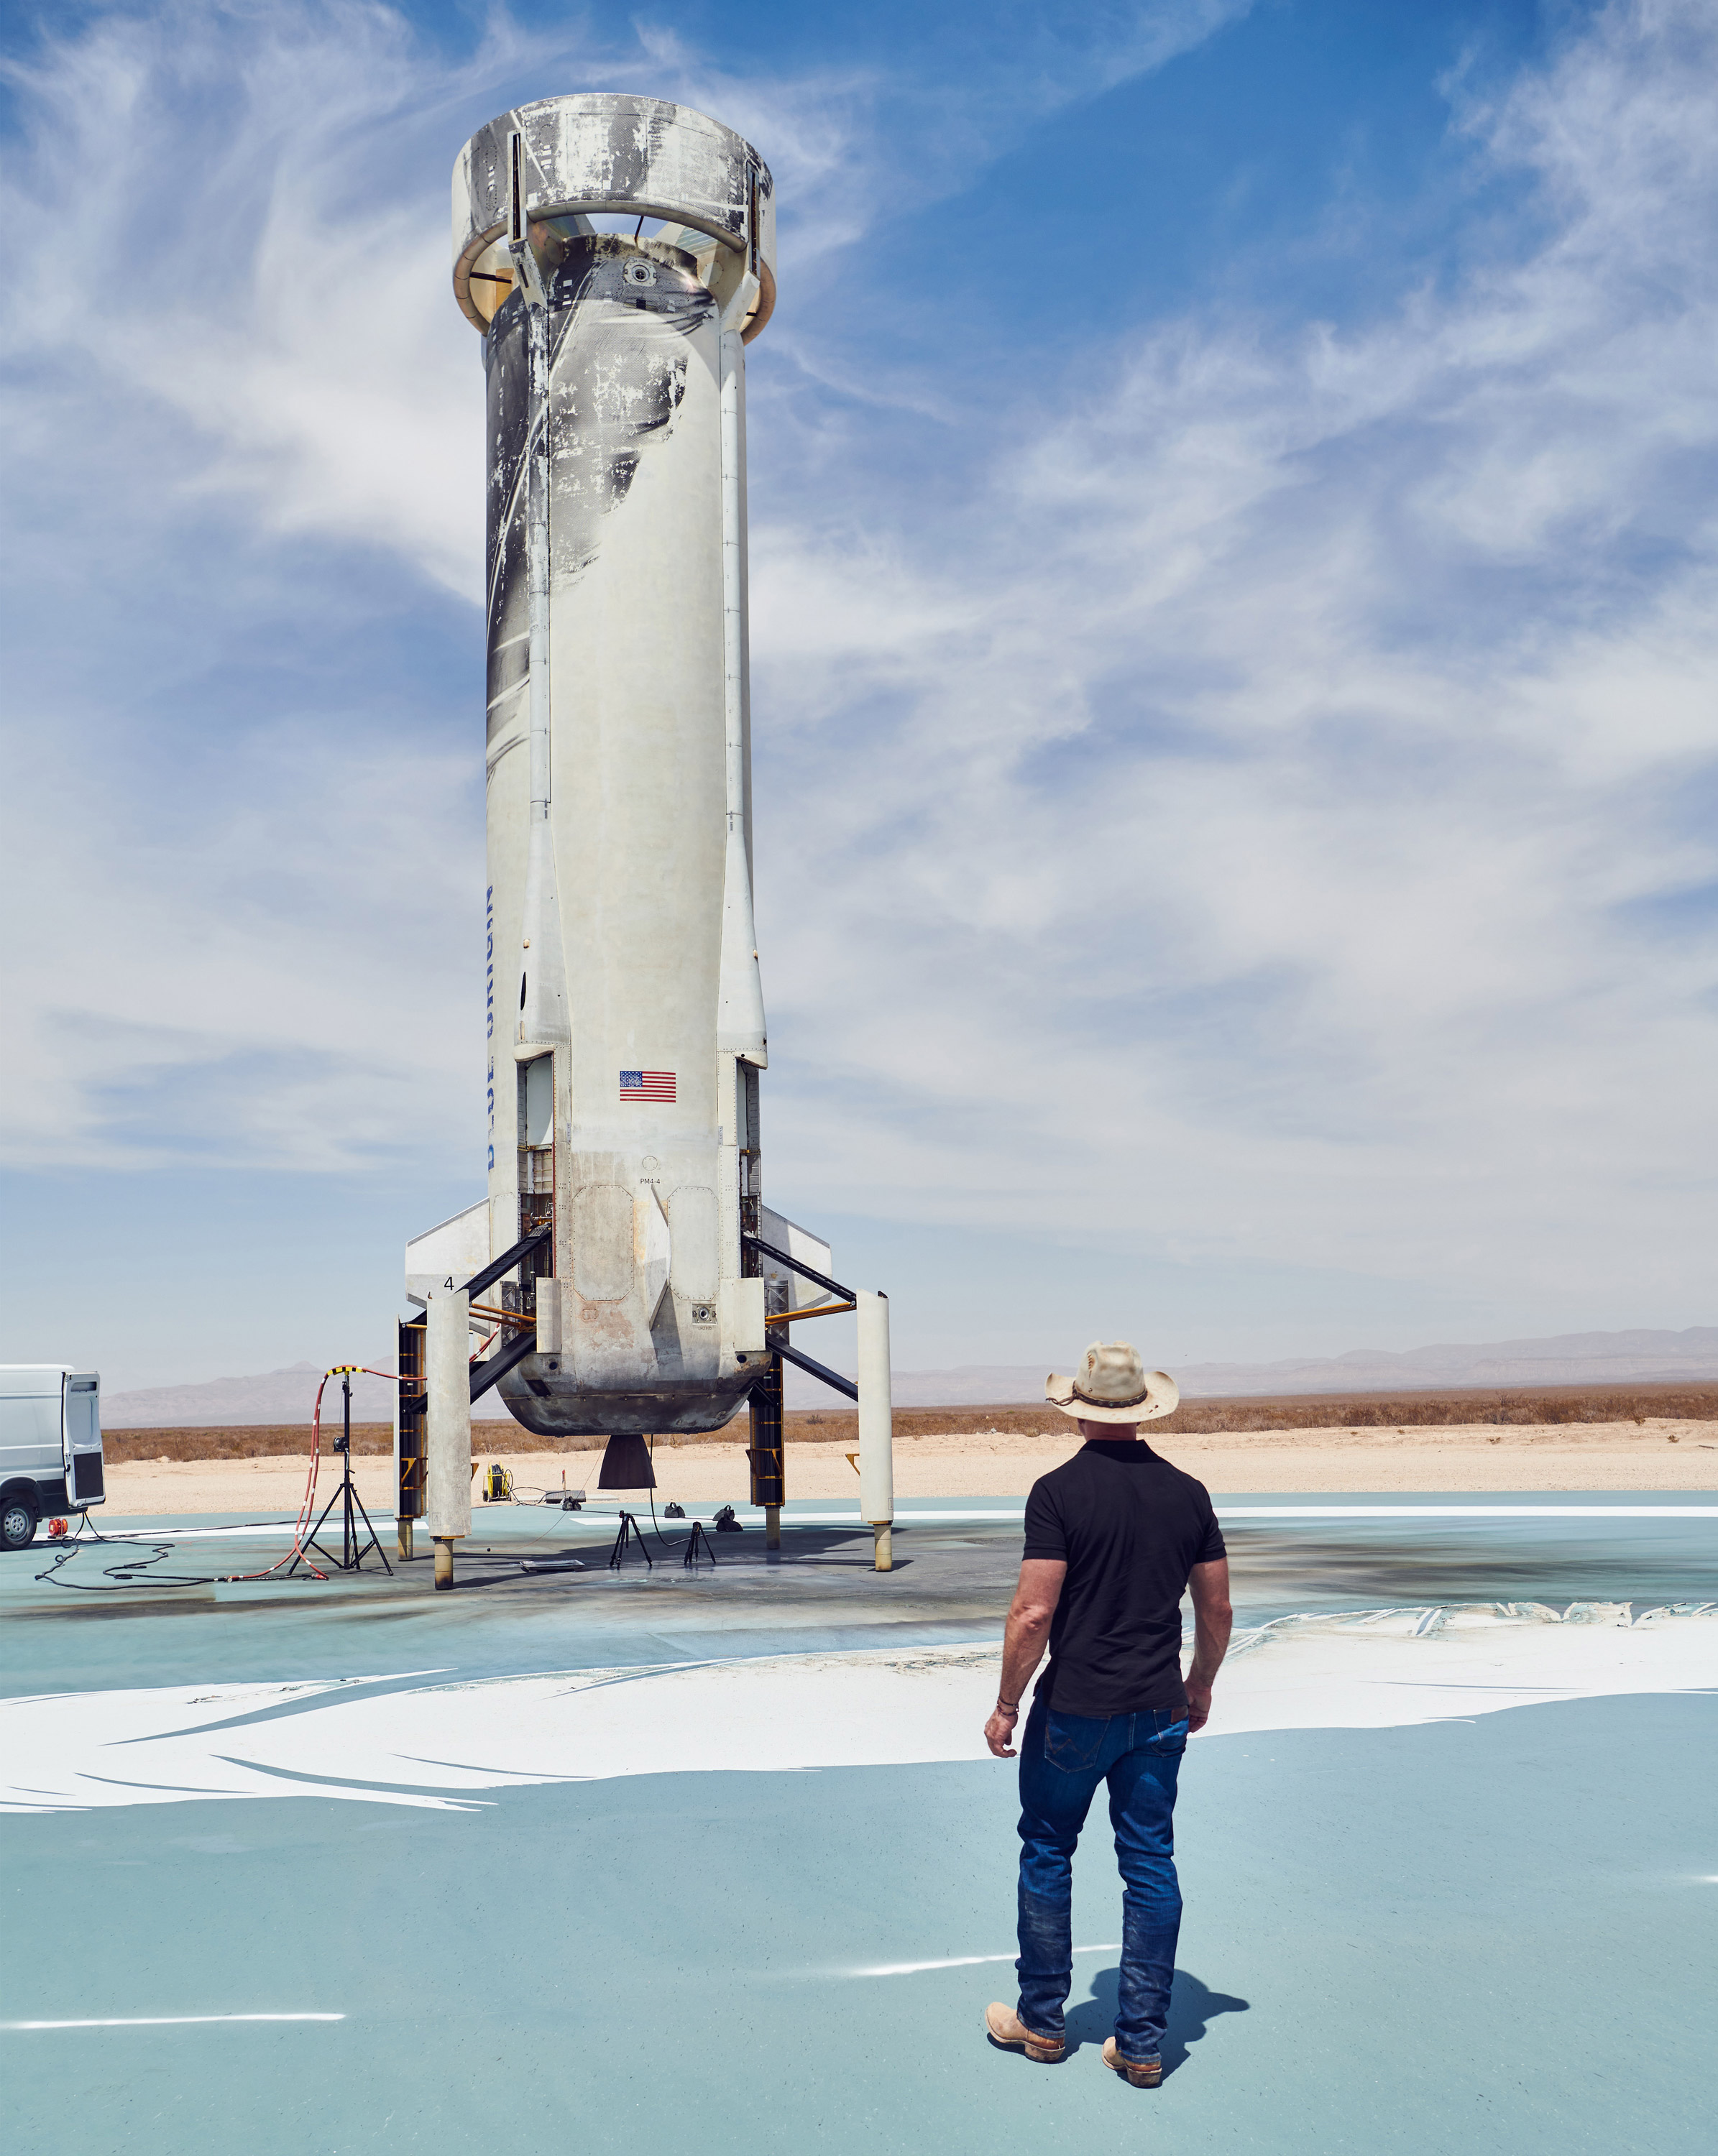 Jeff Bezos stands looking at the Blue Origin rocket on its launchpad.